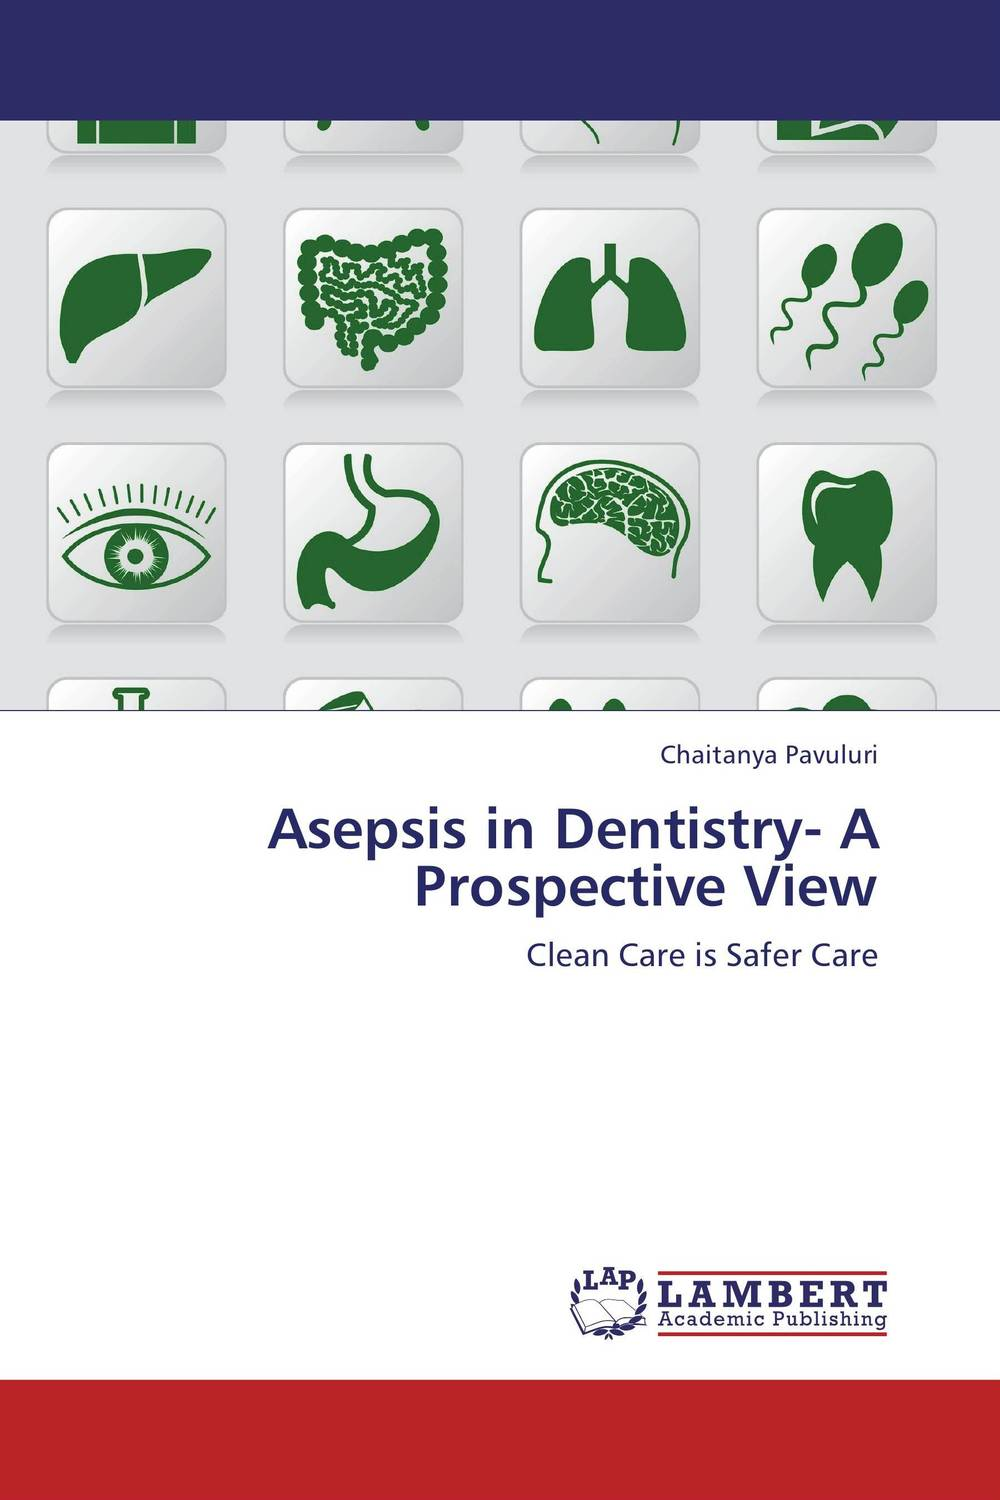 Asepsis in Dentistry- A Prospective View esthetics in implant dentistry